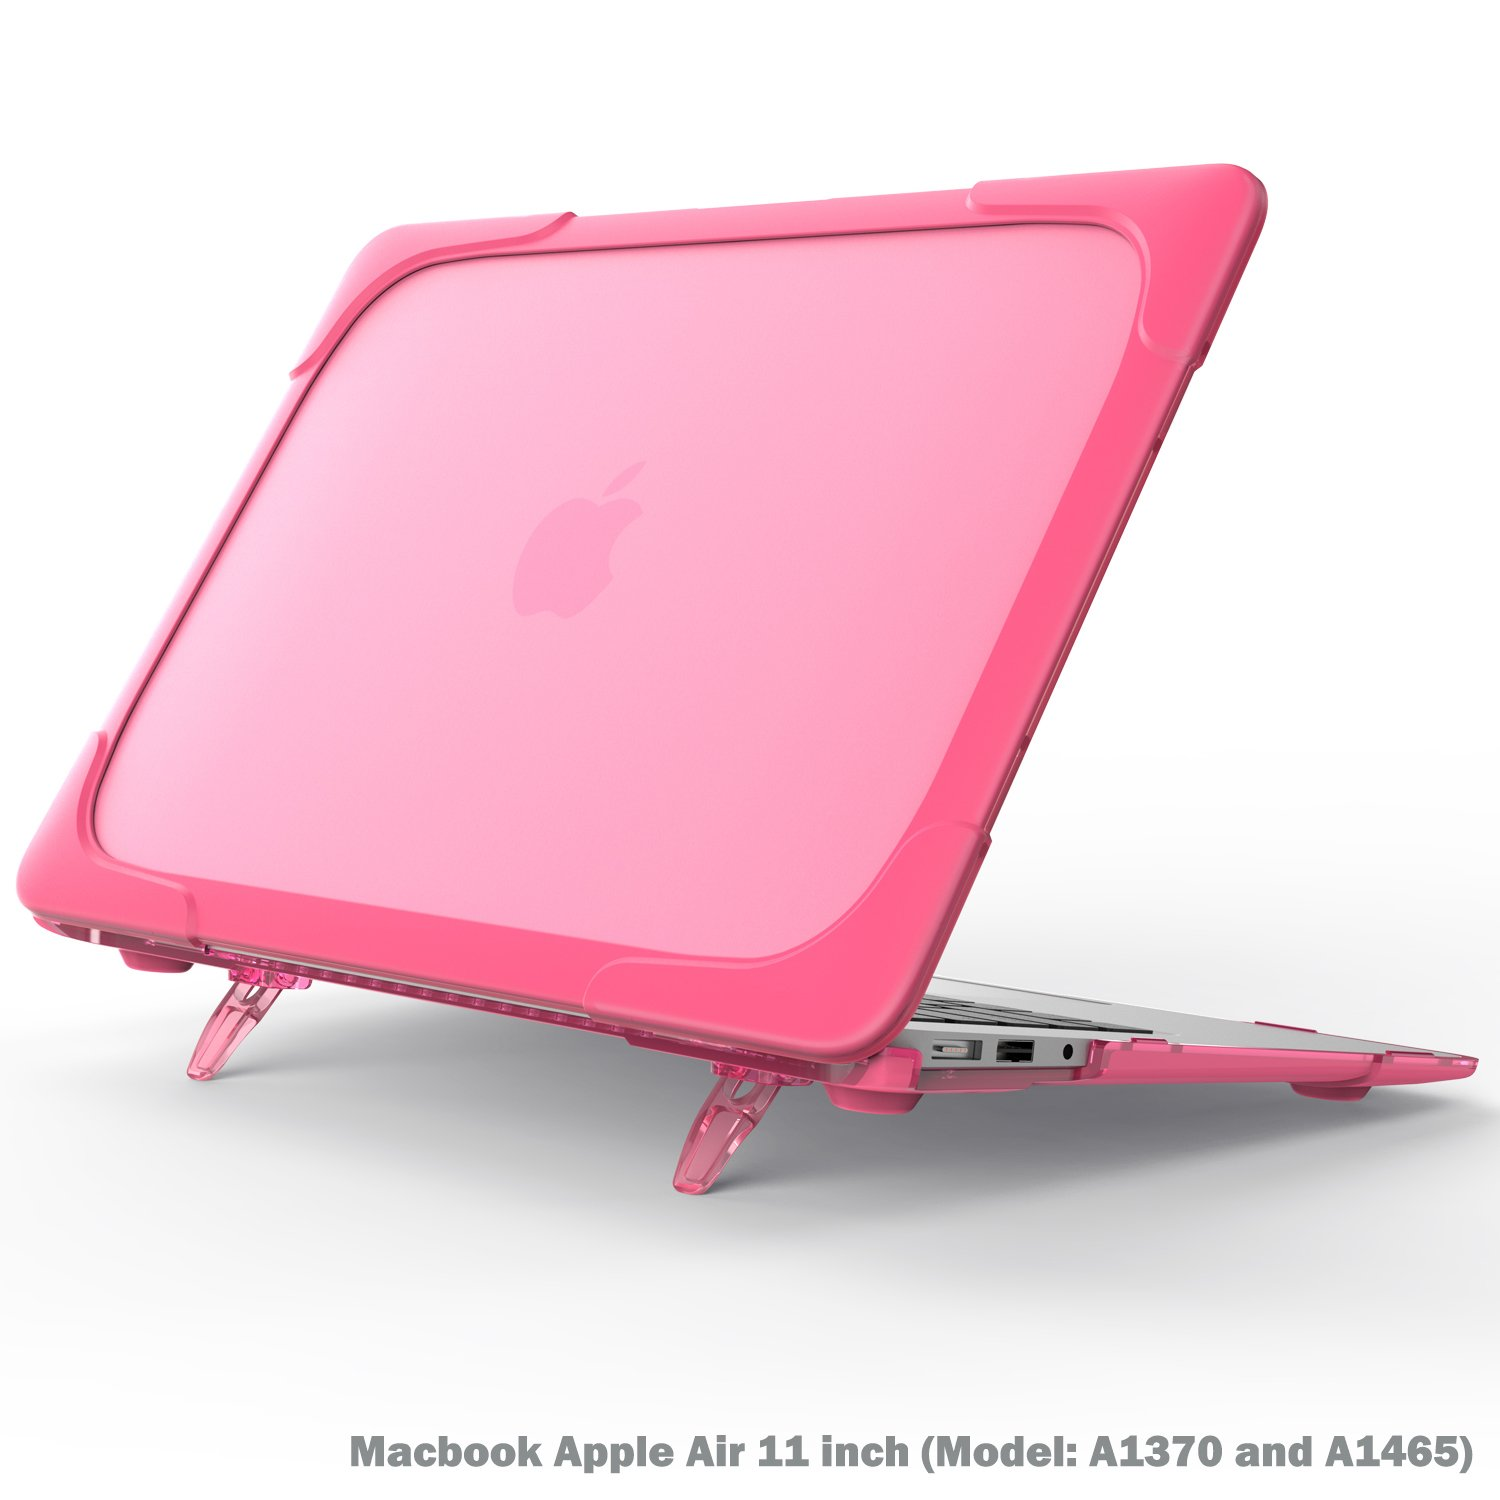 Macbook Air 11 inch Case, Wtiaw[Heavy Duty] Slim Rubberized [Snap on] [Dual Layer] Hard Case Cover with breathe and cool itself freely TPU Bumper Cover for (Model: A1370 and A1465) - Rose Red